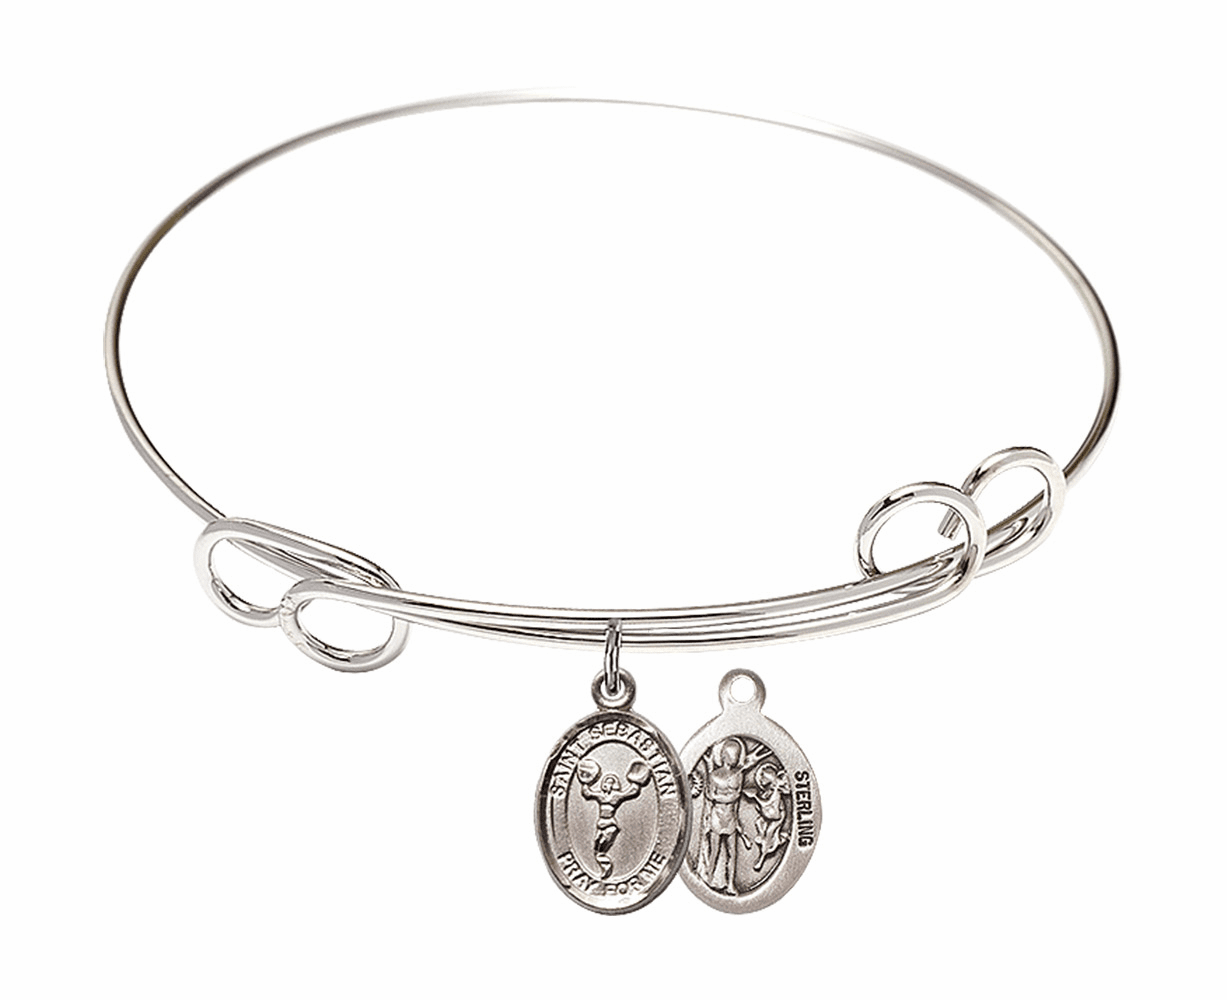 Round Loop St Sebastian Cheerleading Bangle Charm Bracelet by Bliss